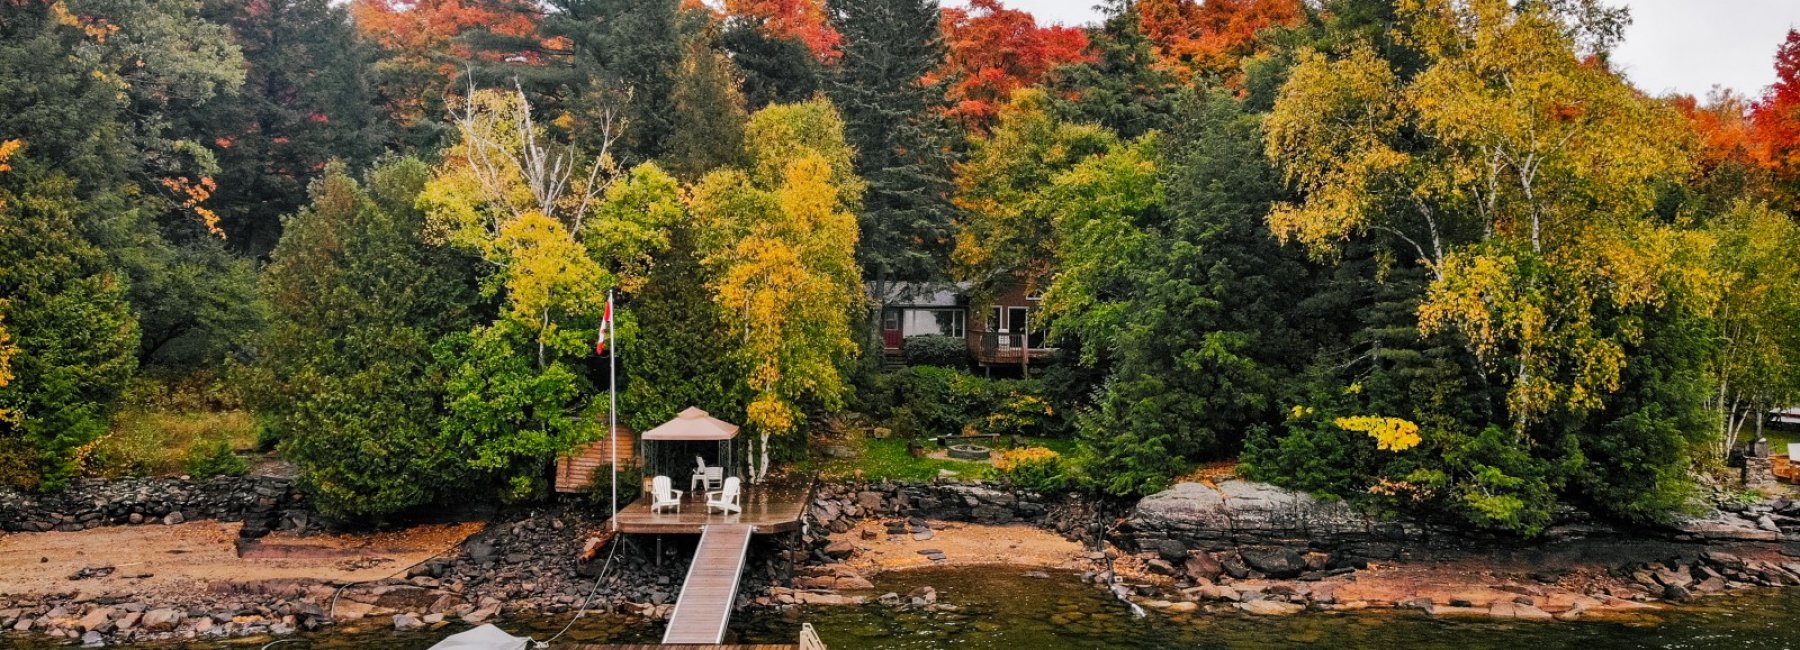 1214 Wilkinson Road, Haliburton - Kennisis Lake